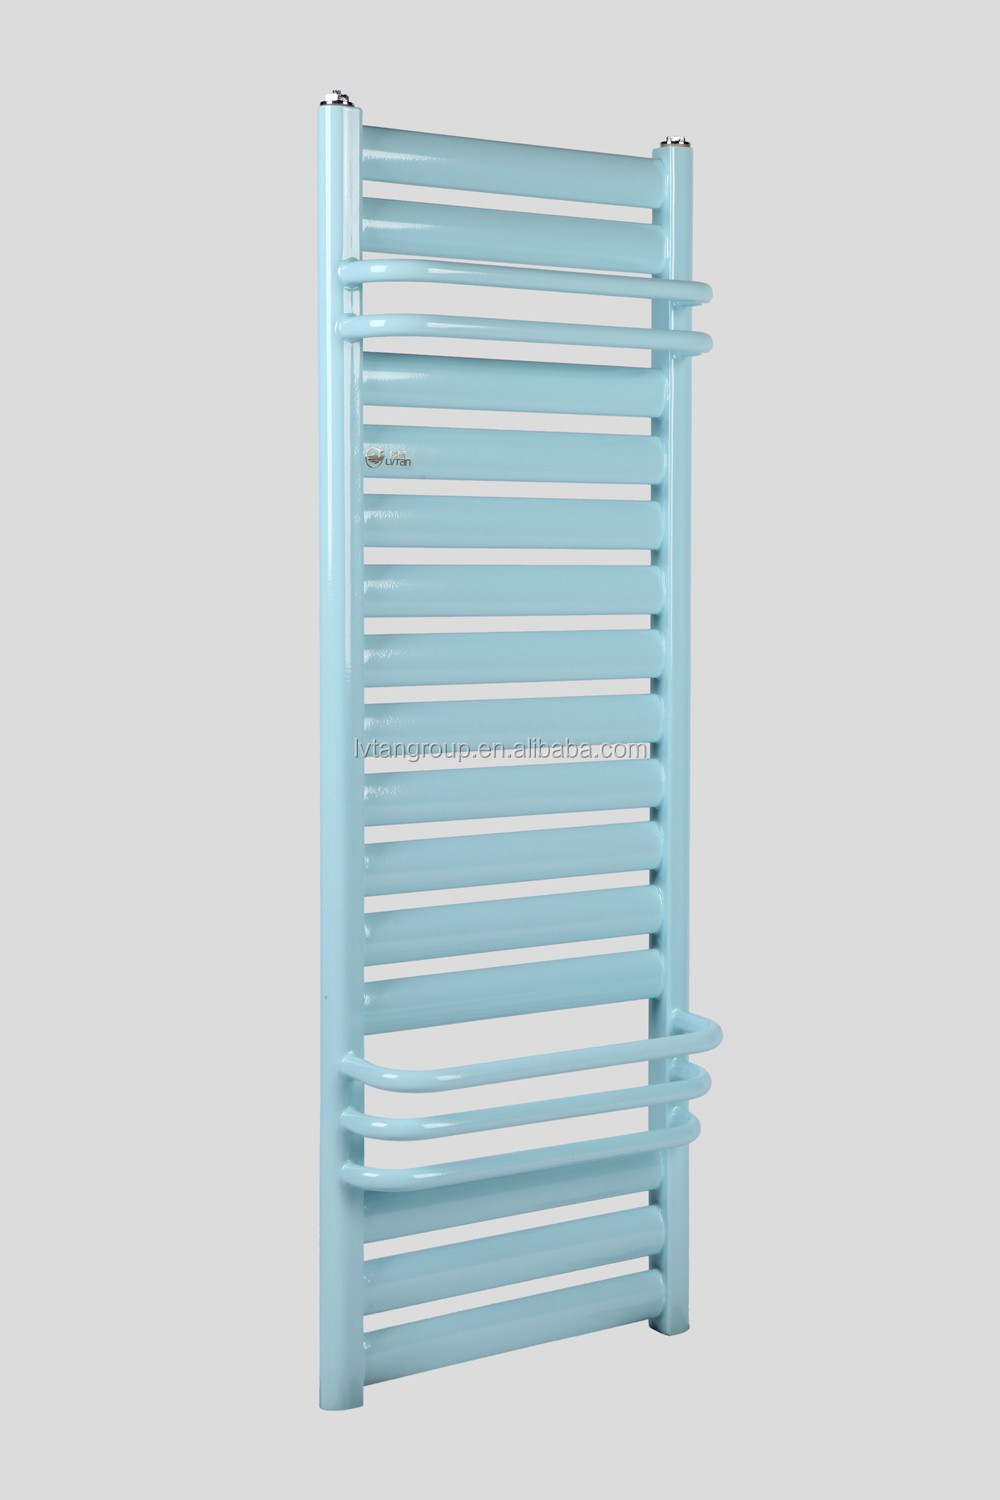 Decorative Towel Warmers : Wall decorative designer radiator towel warmer